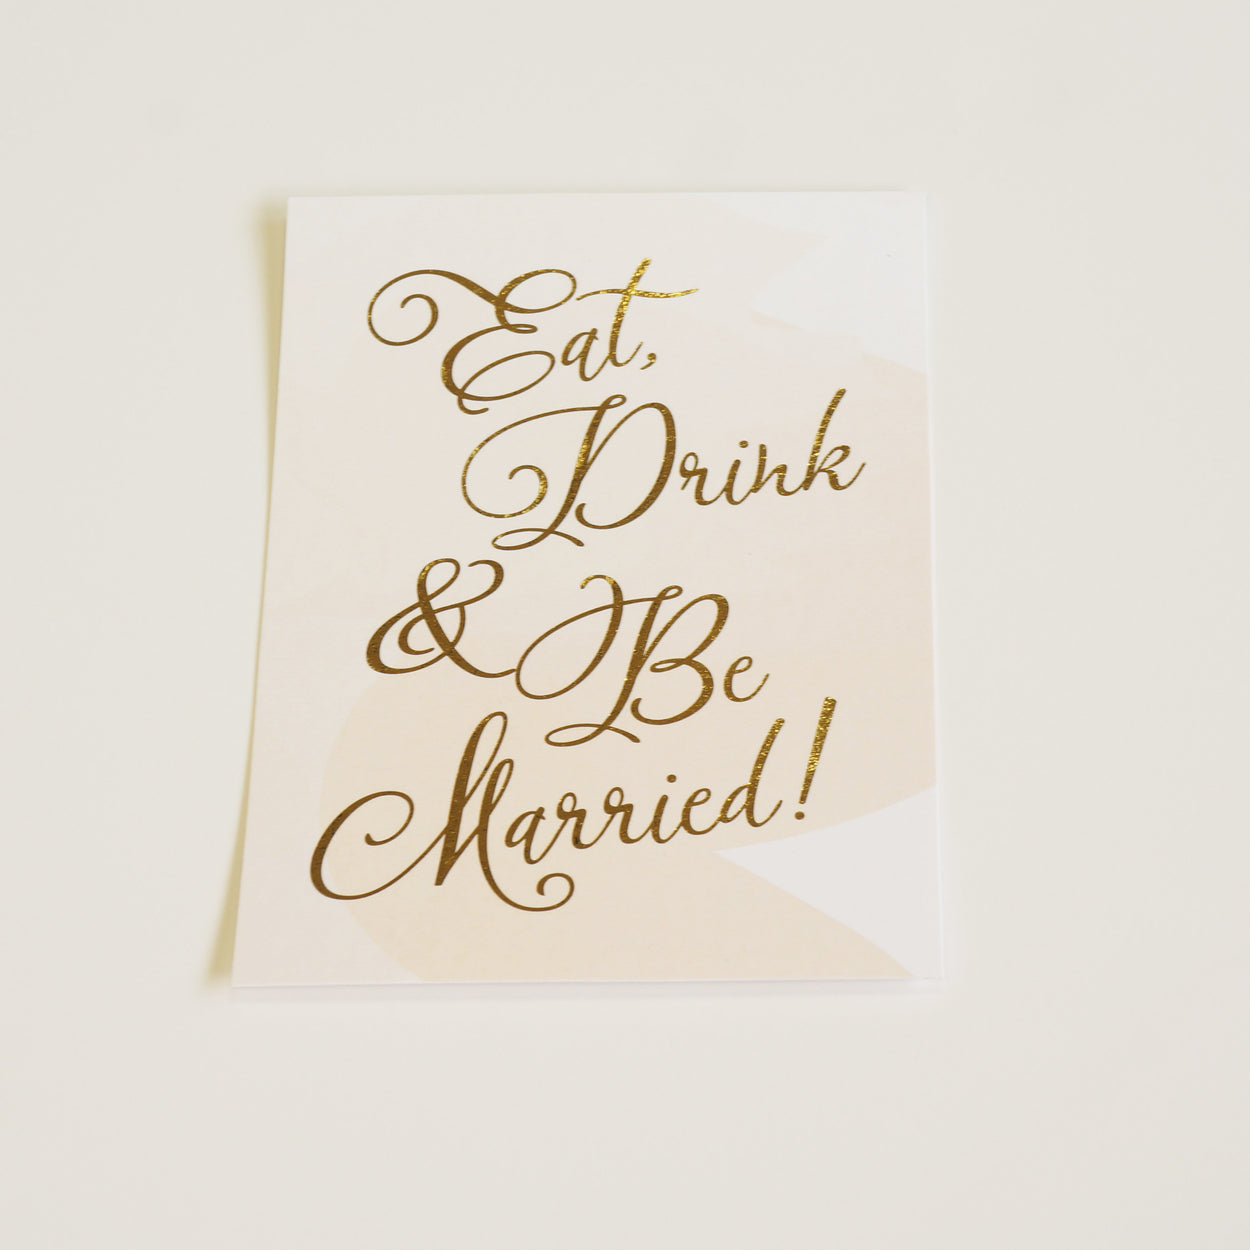 Eat Drink & Be Married Wedding Sign | Gold Foil - shop greeting cards, handmade stationery, & wedding invitations by dodeline design - 1